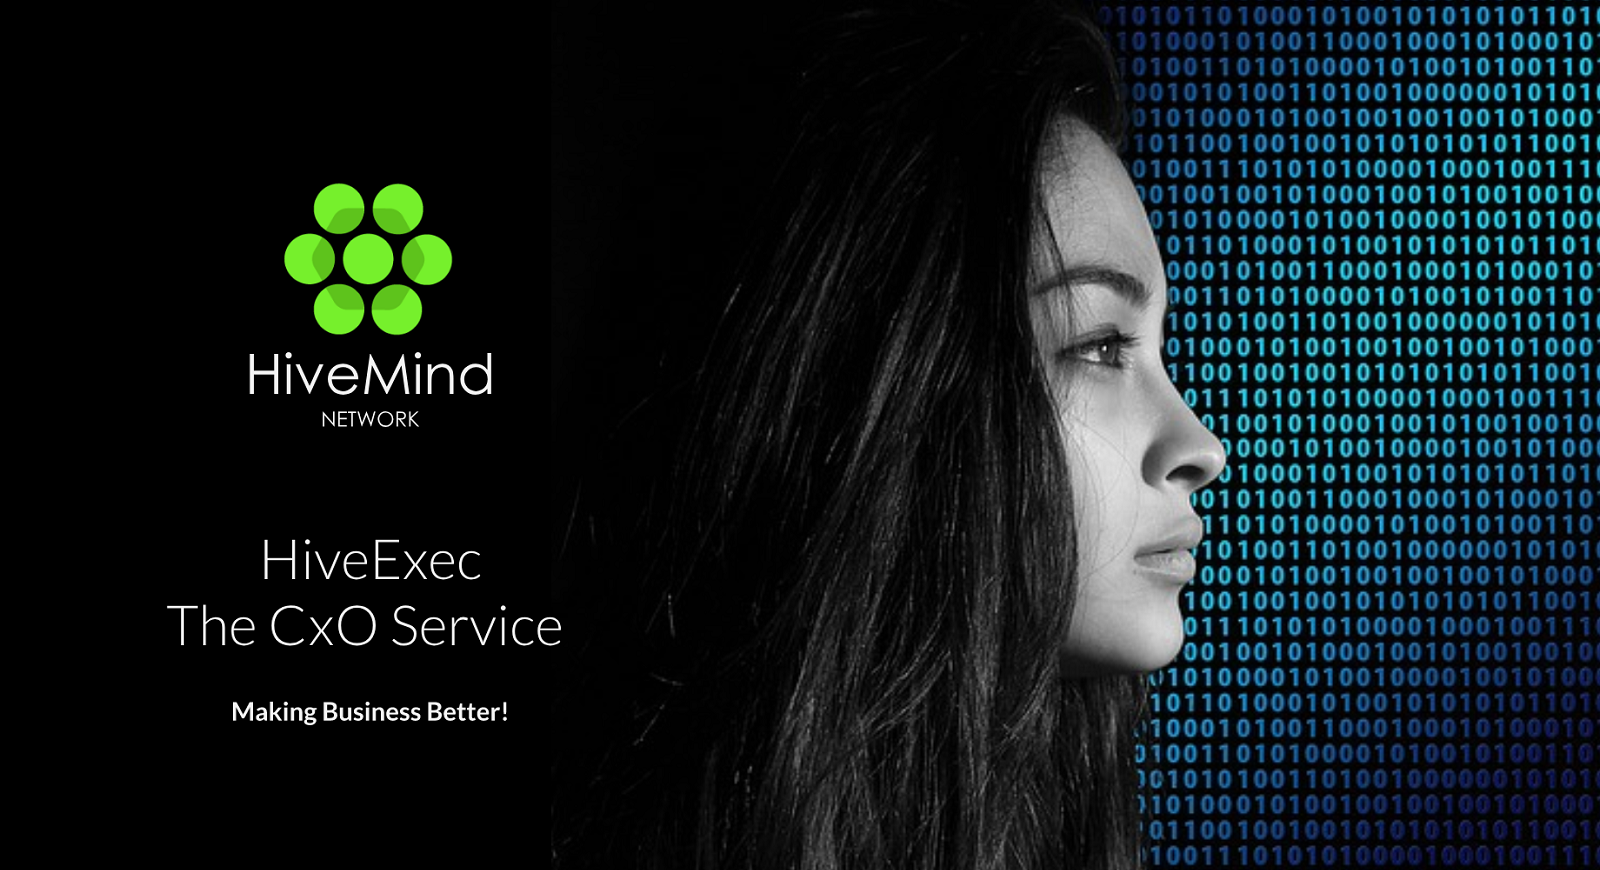 HiveExec - the CxO Service